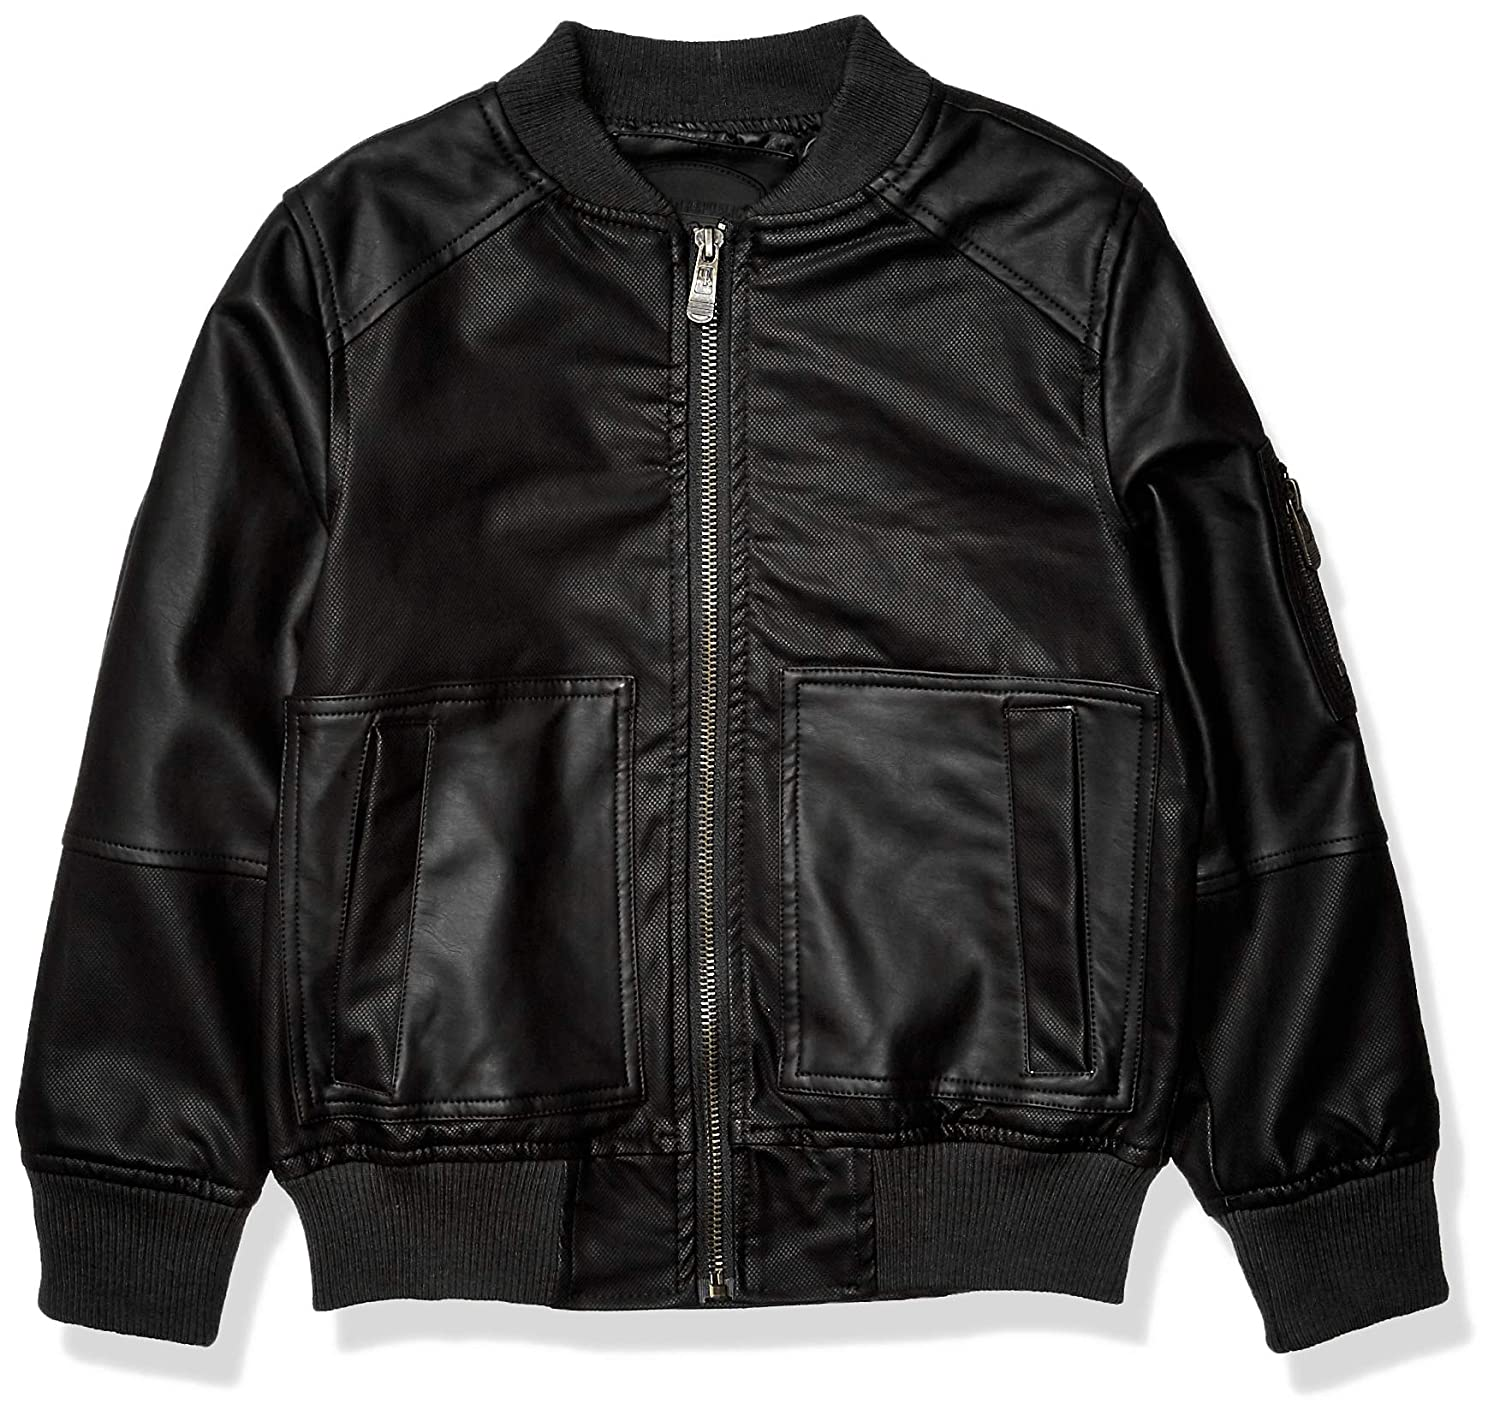 Amazon.com: Urban Republic Boys Textured Faux Leather Jacket ...